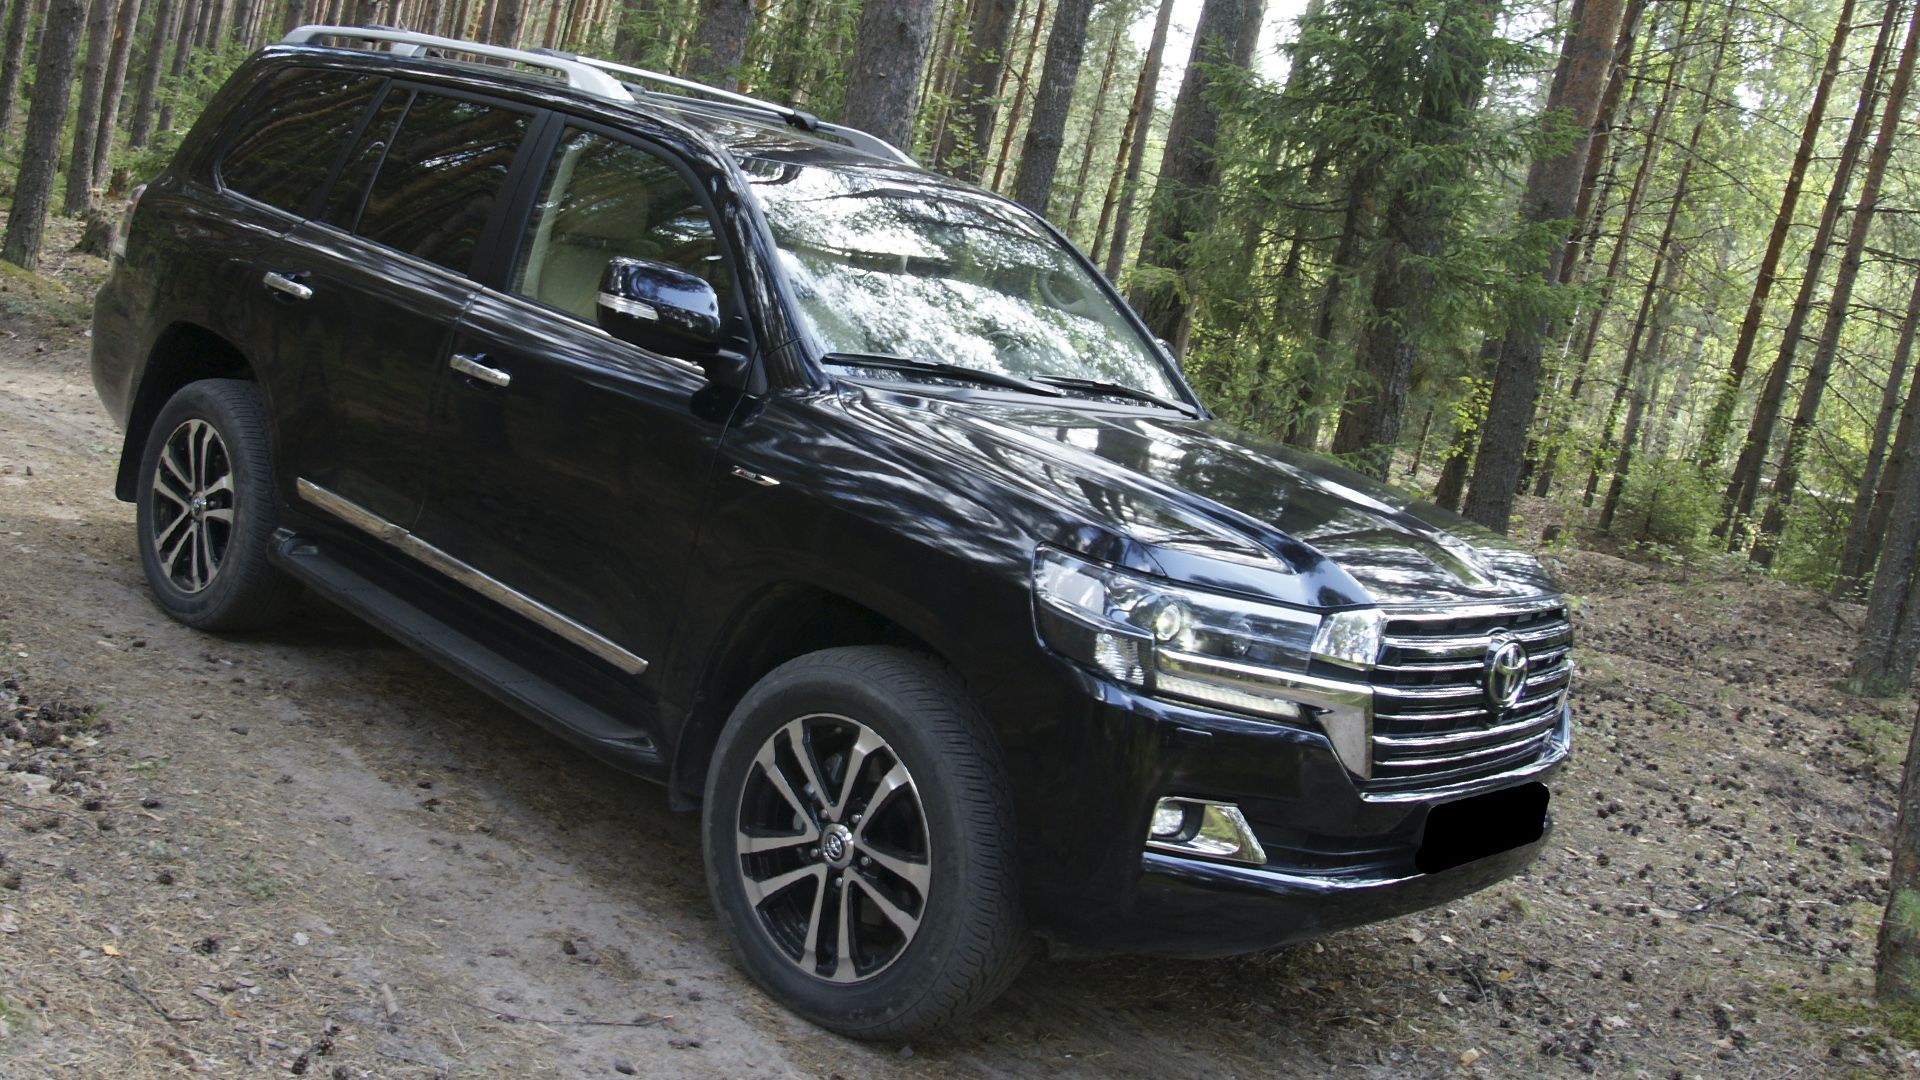 new 2019 toyota land cruiser 200 release date toyota car prices list toyota land cruiser. Black Bedroom Furniture Sets. Home Design Ideas